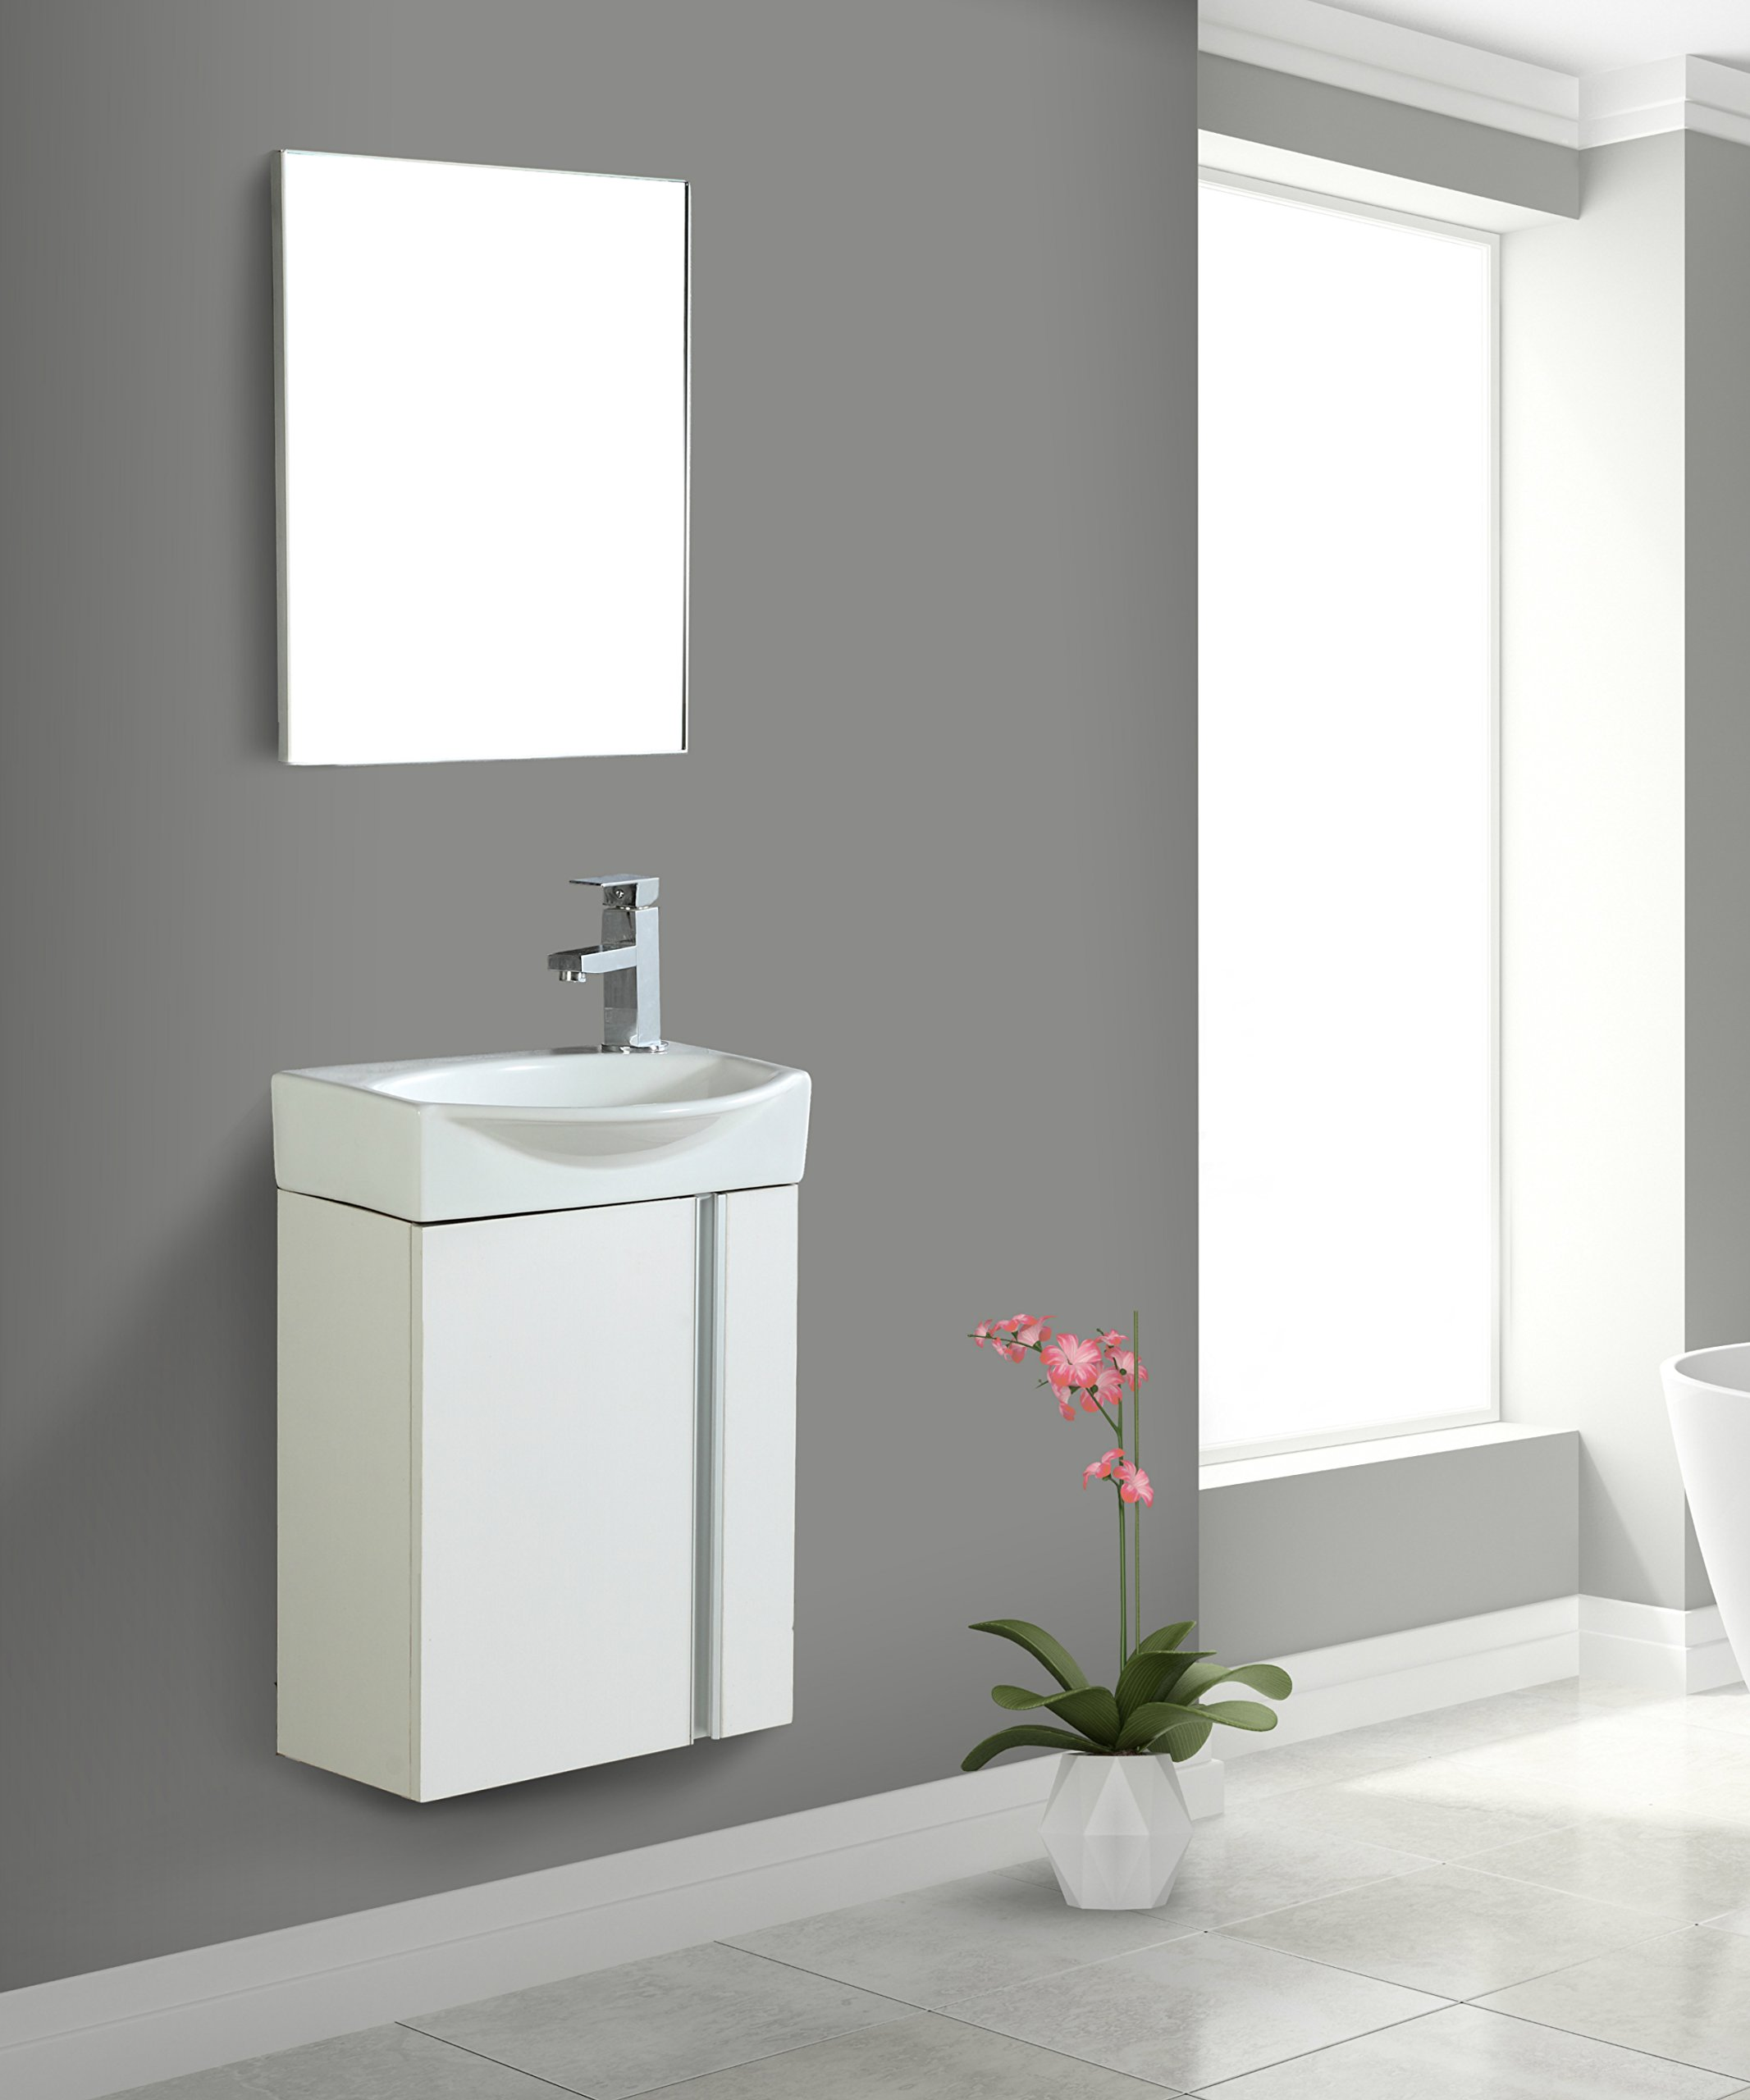 Fine Fixtures Compacto Small Bathroom Vanity Set With Sink -Wall-Hung Cabinet- Sink top, And Mirror Included (White) by Fine Fixtures